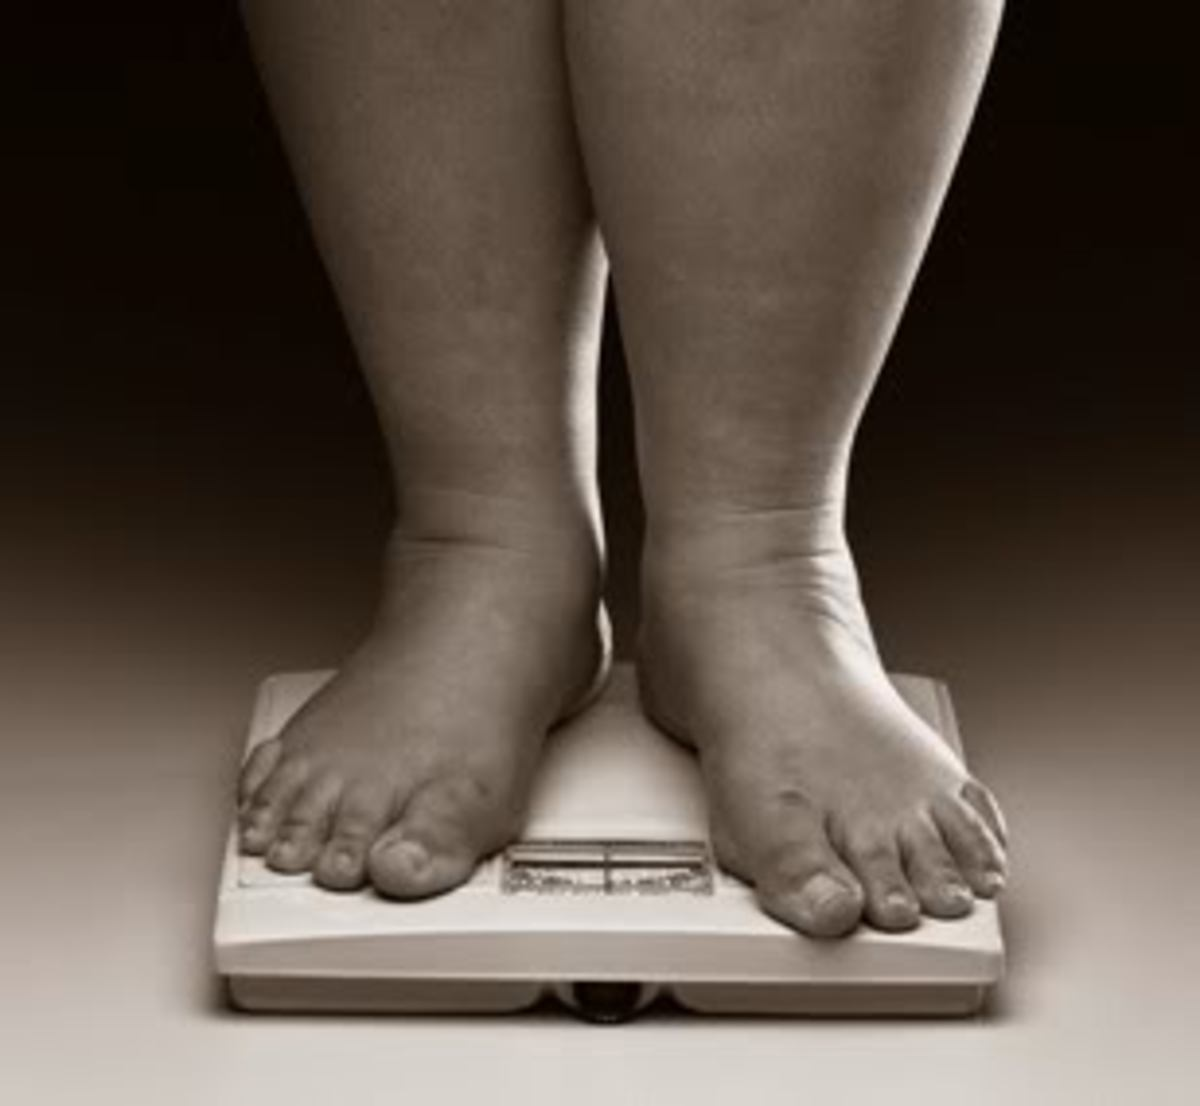 In modern research, weight gain is often linked to brain disorders or genetic adaptations inherited from your parents, rather than will power and discipline. But does this mean you are doomed to be fat forever?